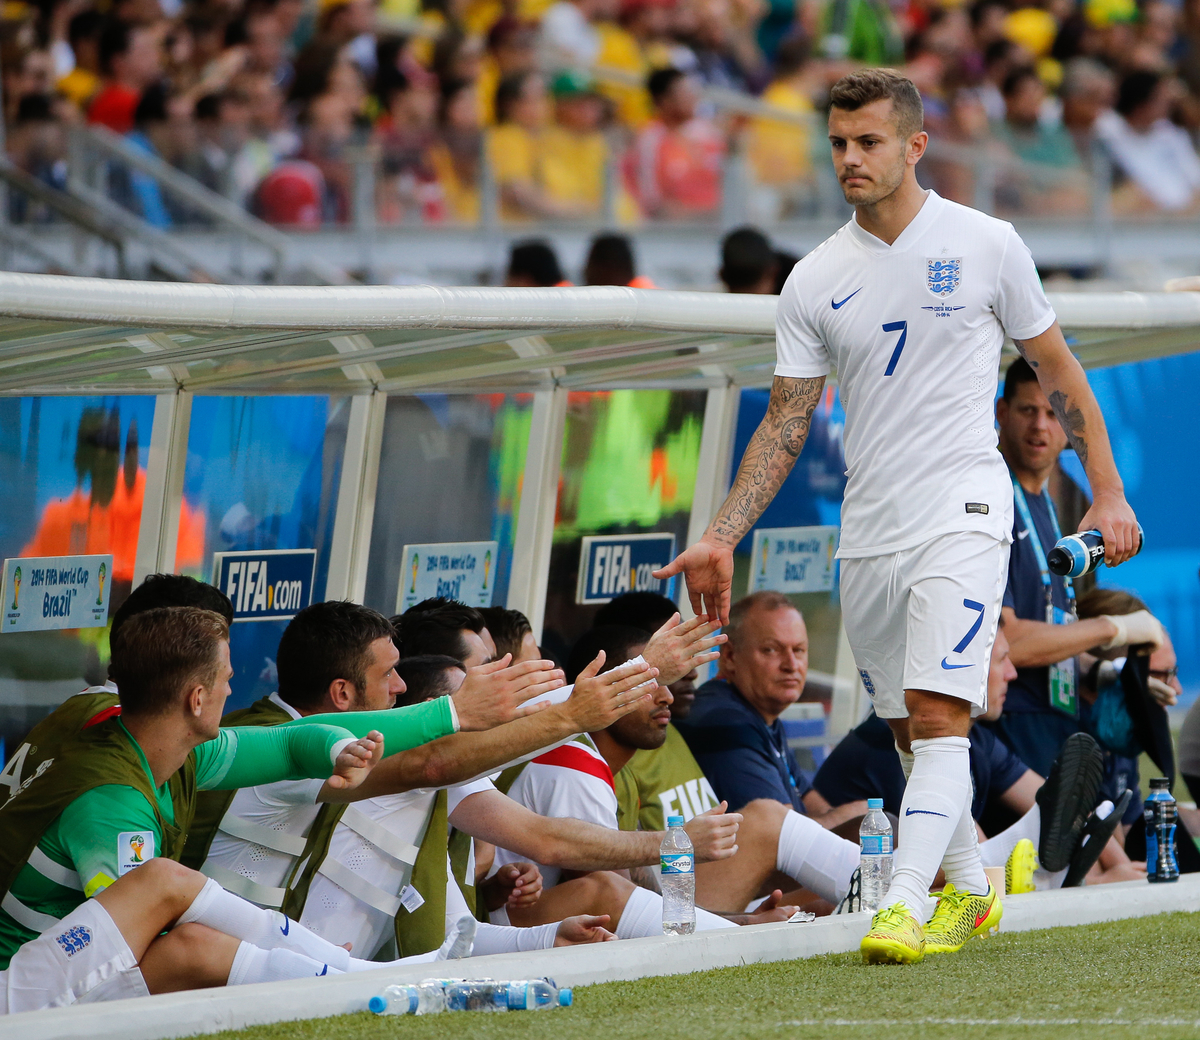 Jack Wilshere of England looks unhappy as he is substituted and shakes hands with his team mates on the bench during the 2014 FIFA World Cup match at Mineirao, Belo Horizonte, Brazil.  Picture by Andrew Tobin/Focus Images Ltd +44 7710 761829 24/06/2014